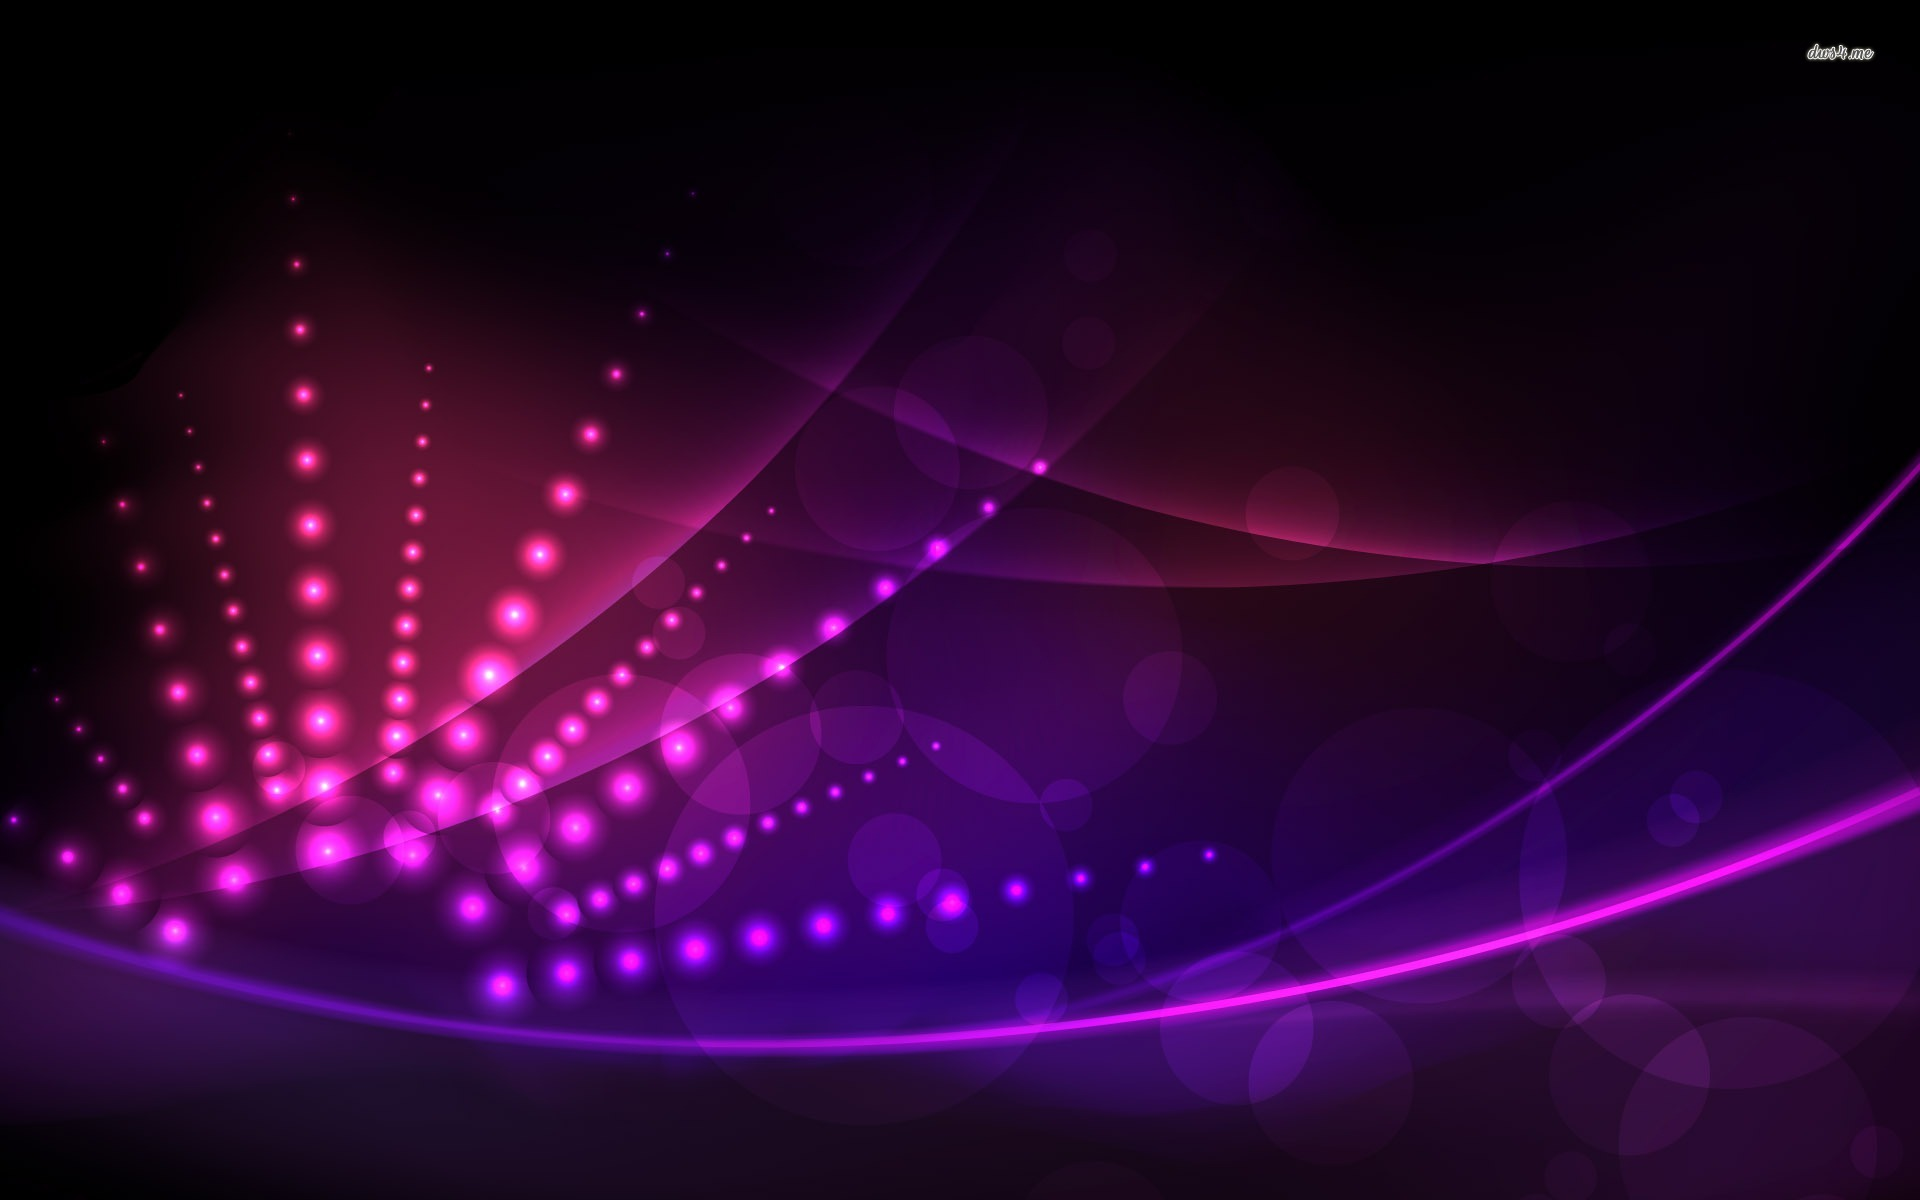 Abstract Light Wallpapers